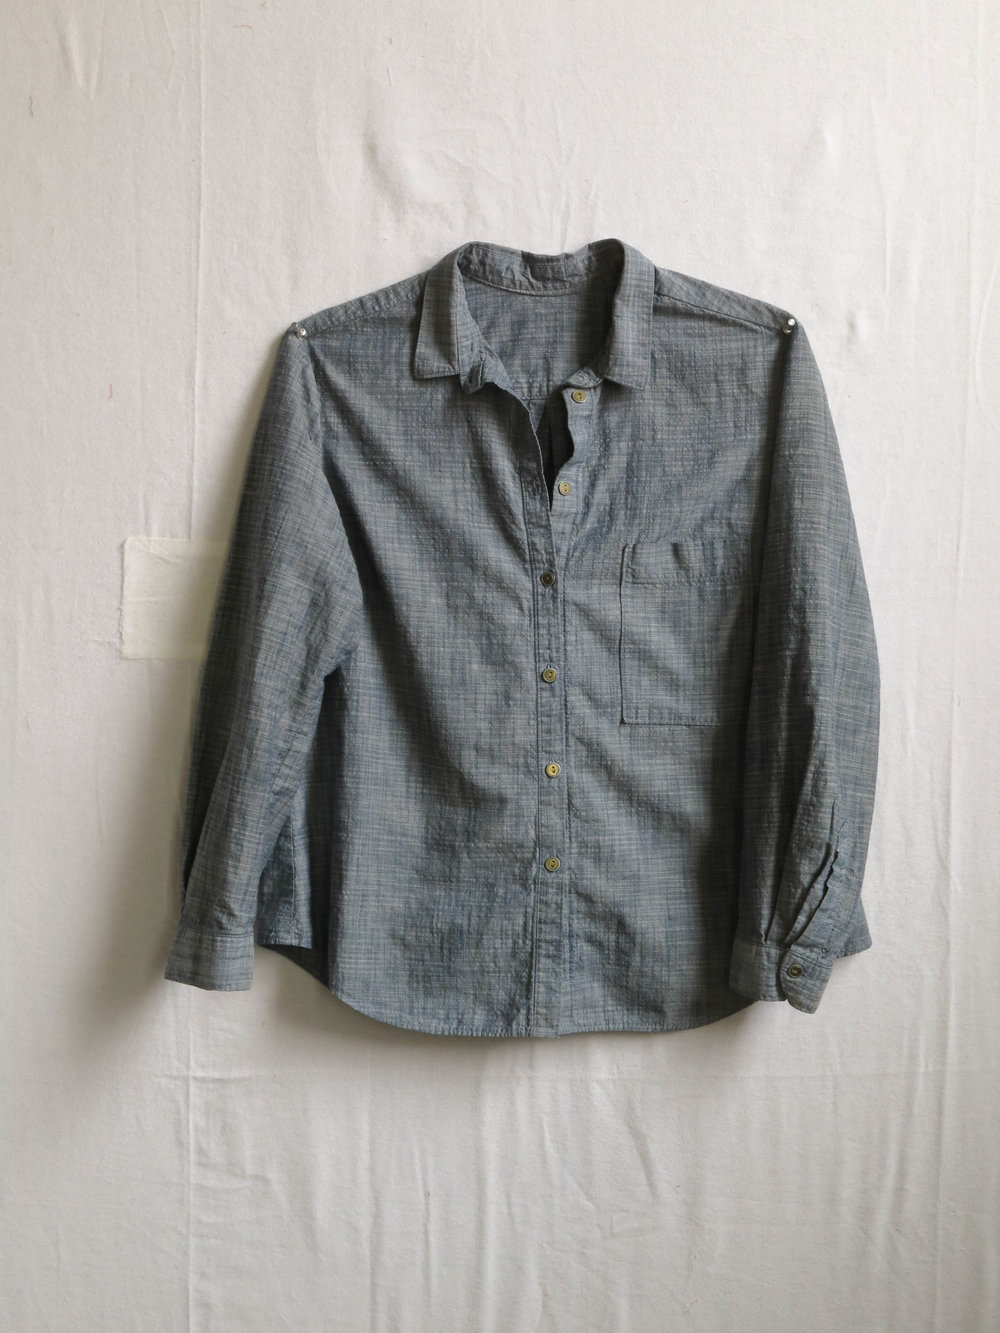 An Archer shirt, pattern by Jen Beeman of Grainline Studio, in chambray from Robert Kaufman.